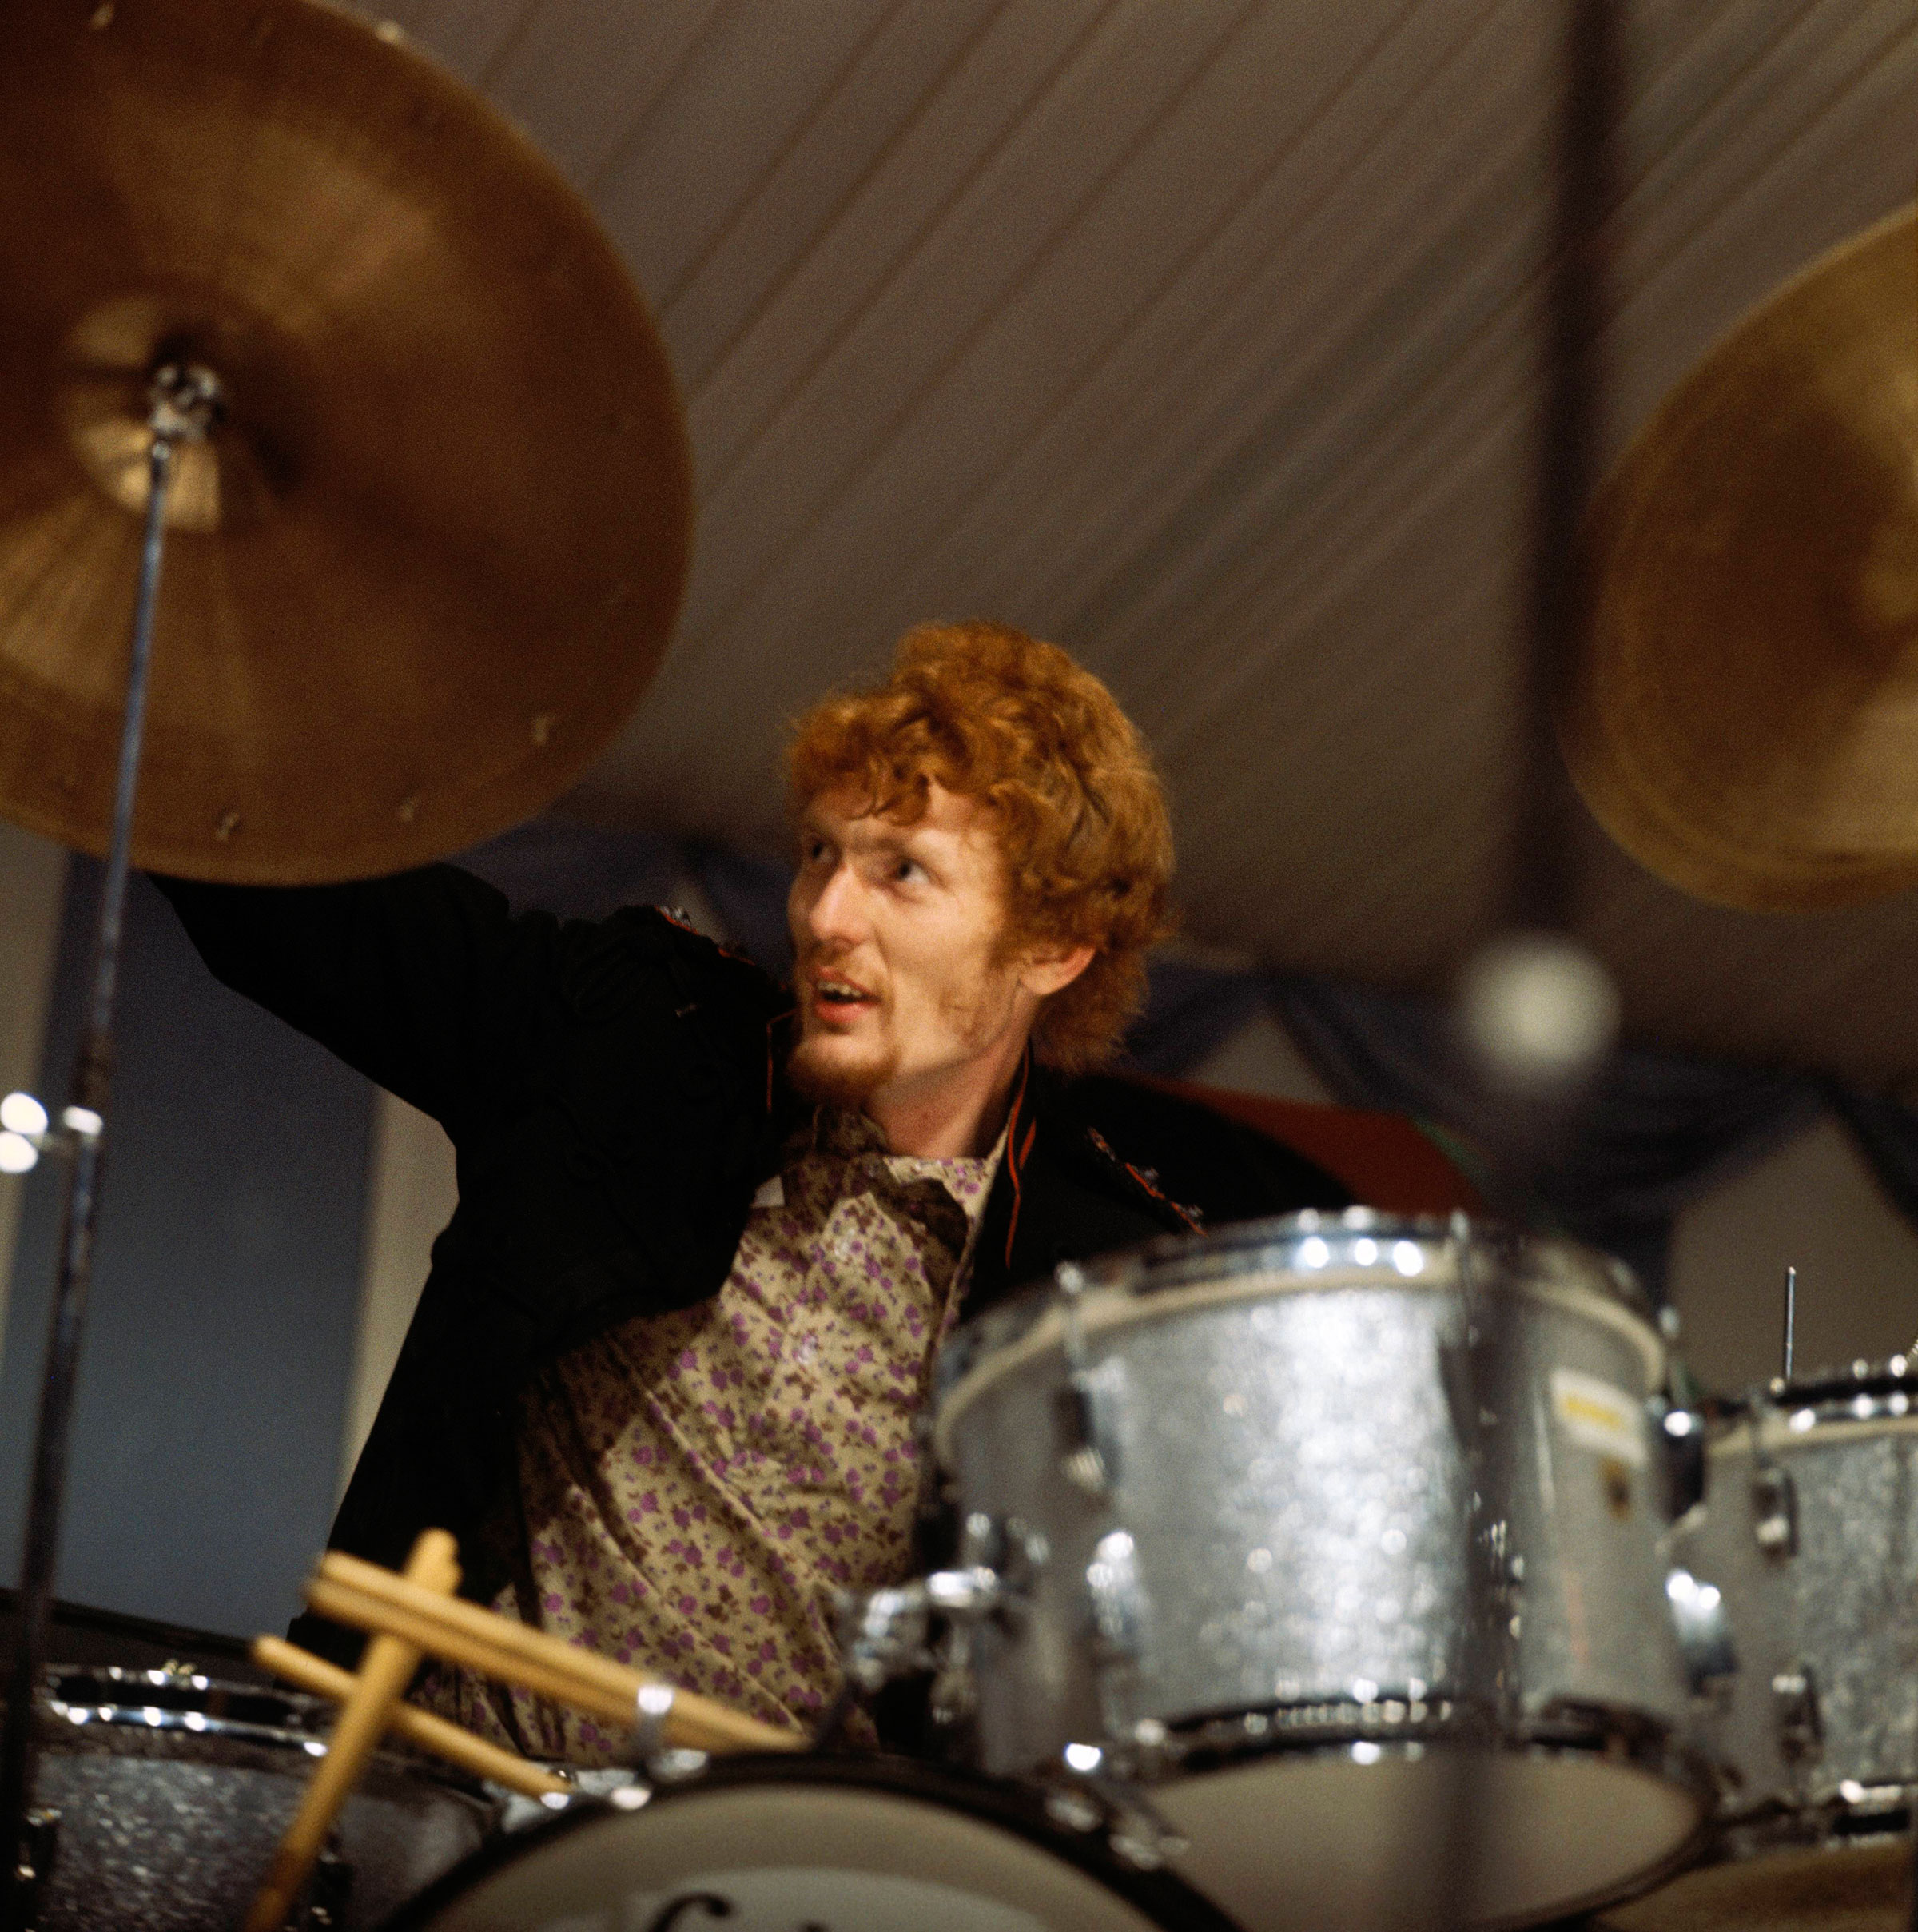 Ginger Baker performs with Cream at Windsor Festival